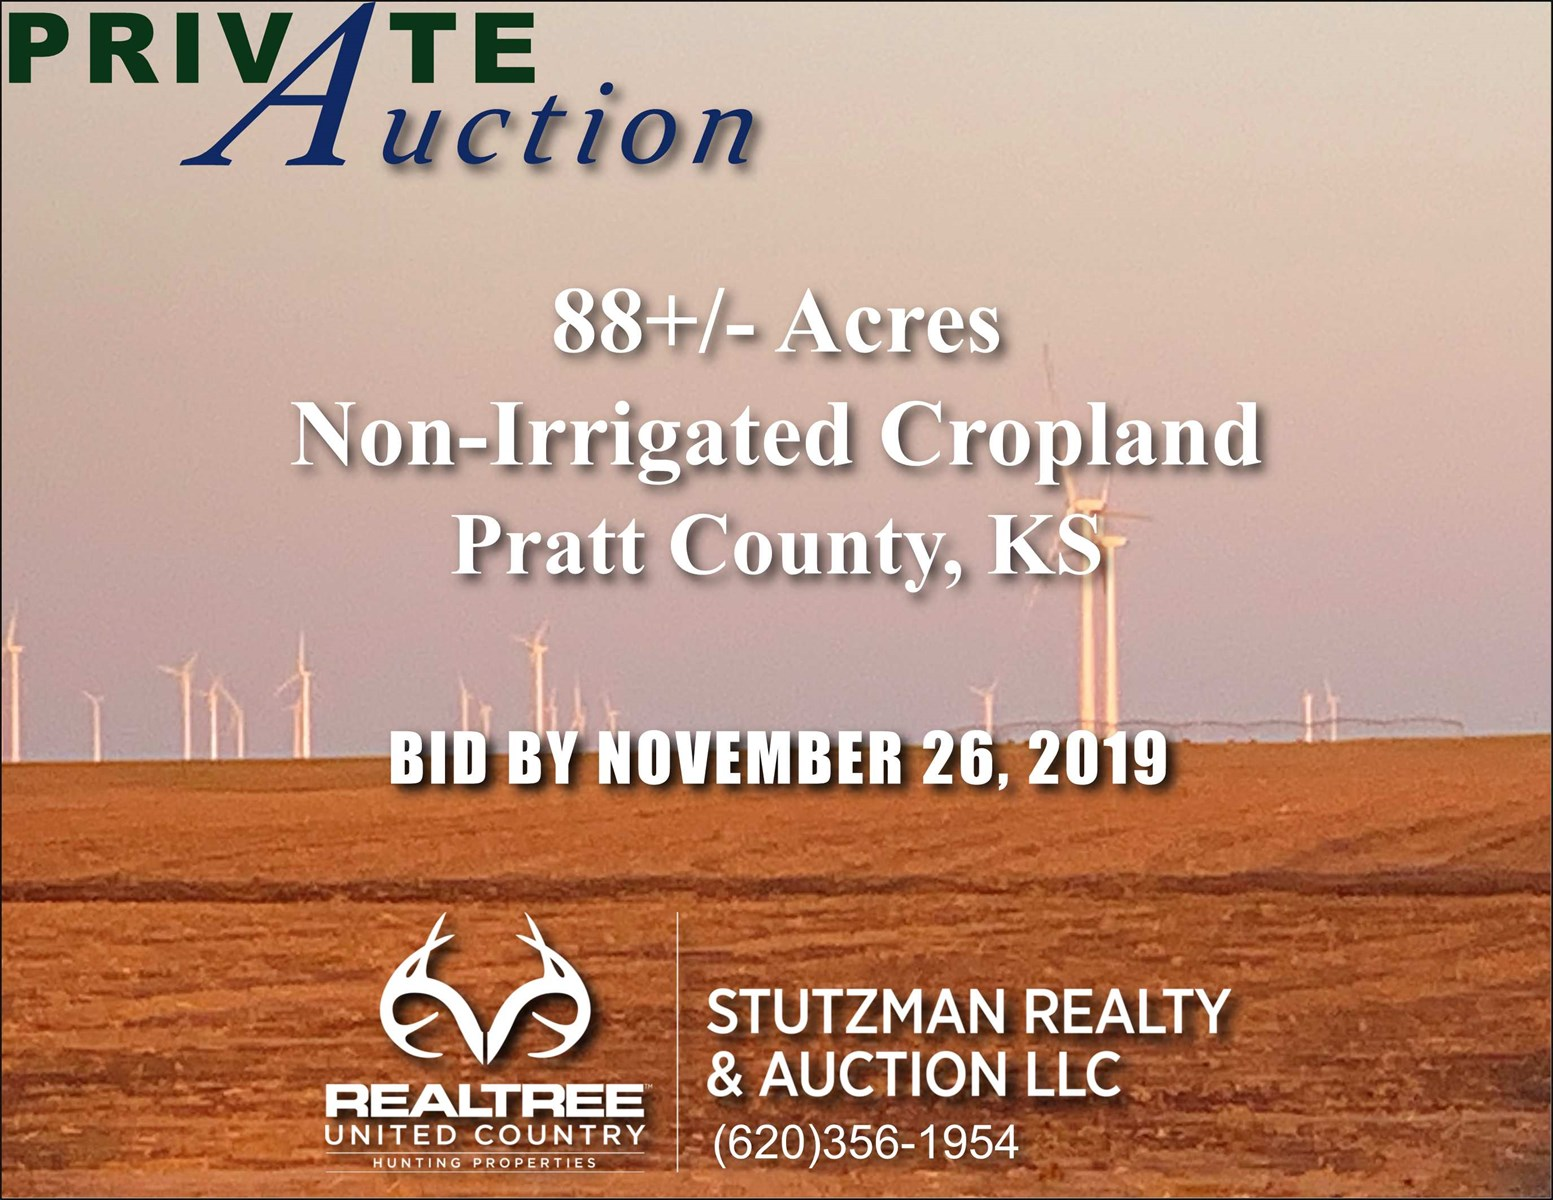 PRATT COUNTY KS 88+/- ACRES ~ NON-IRRIGATED CROPLAND ~ PRIVATE AUCTION